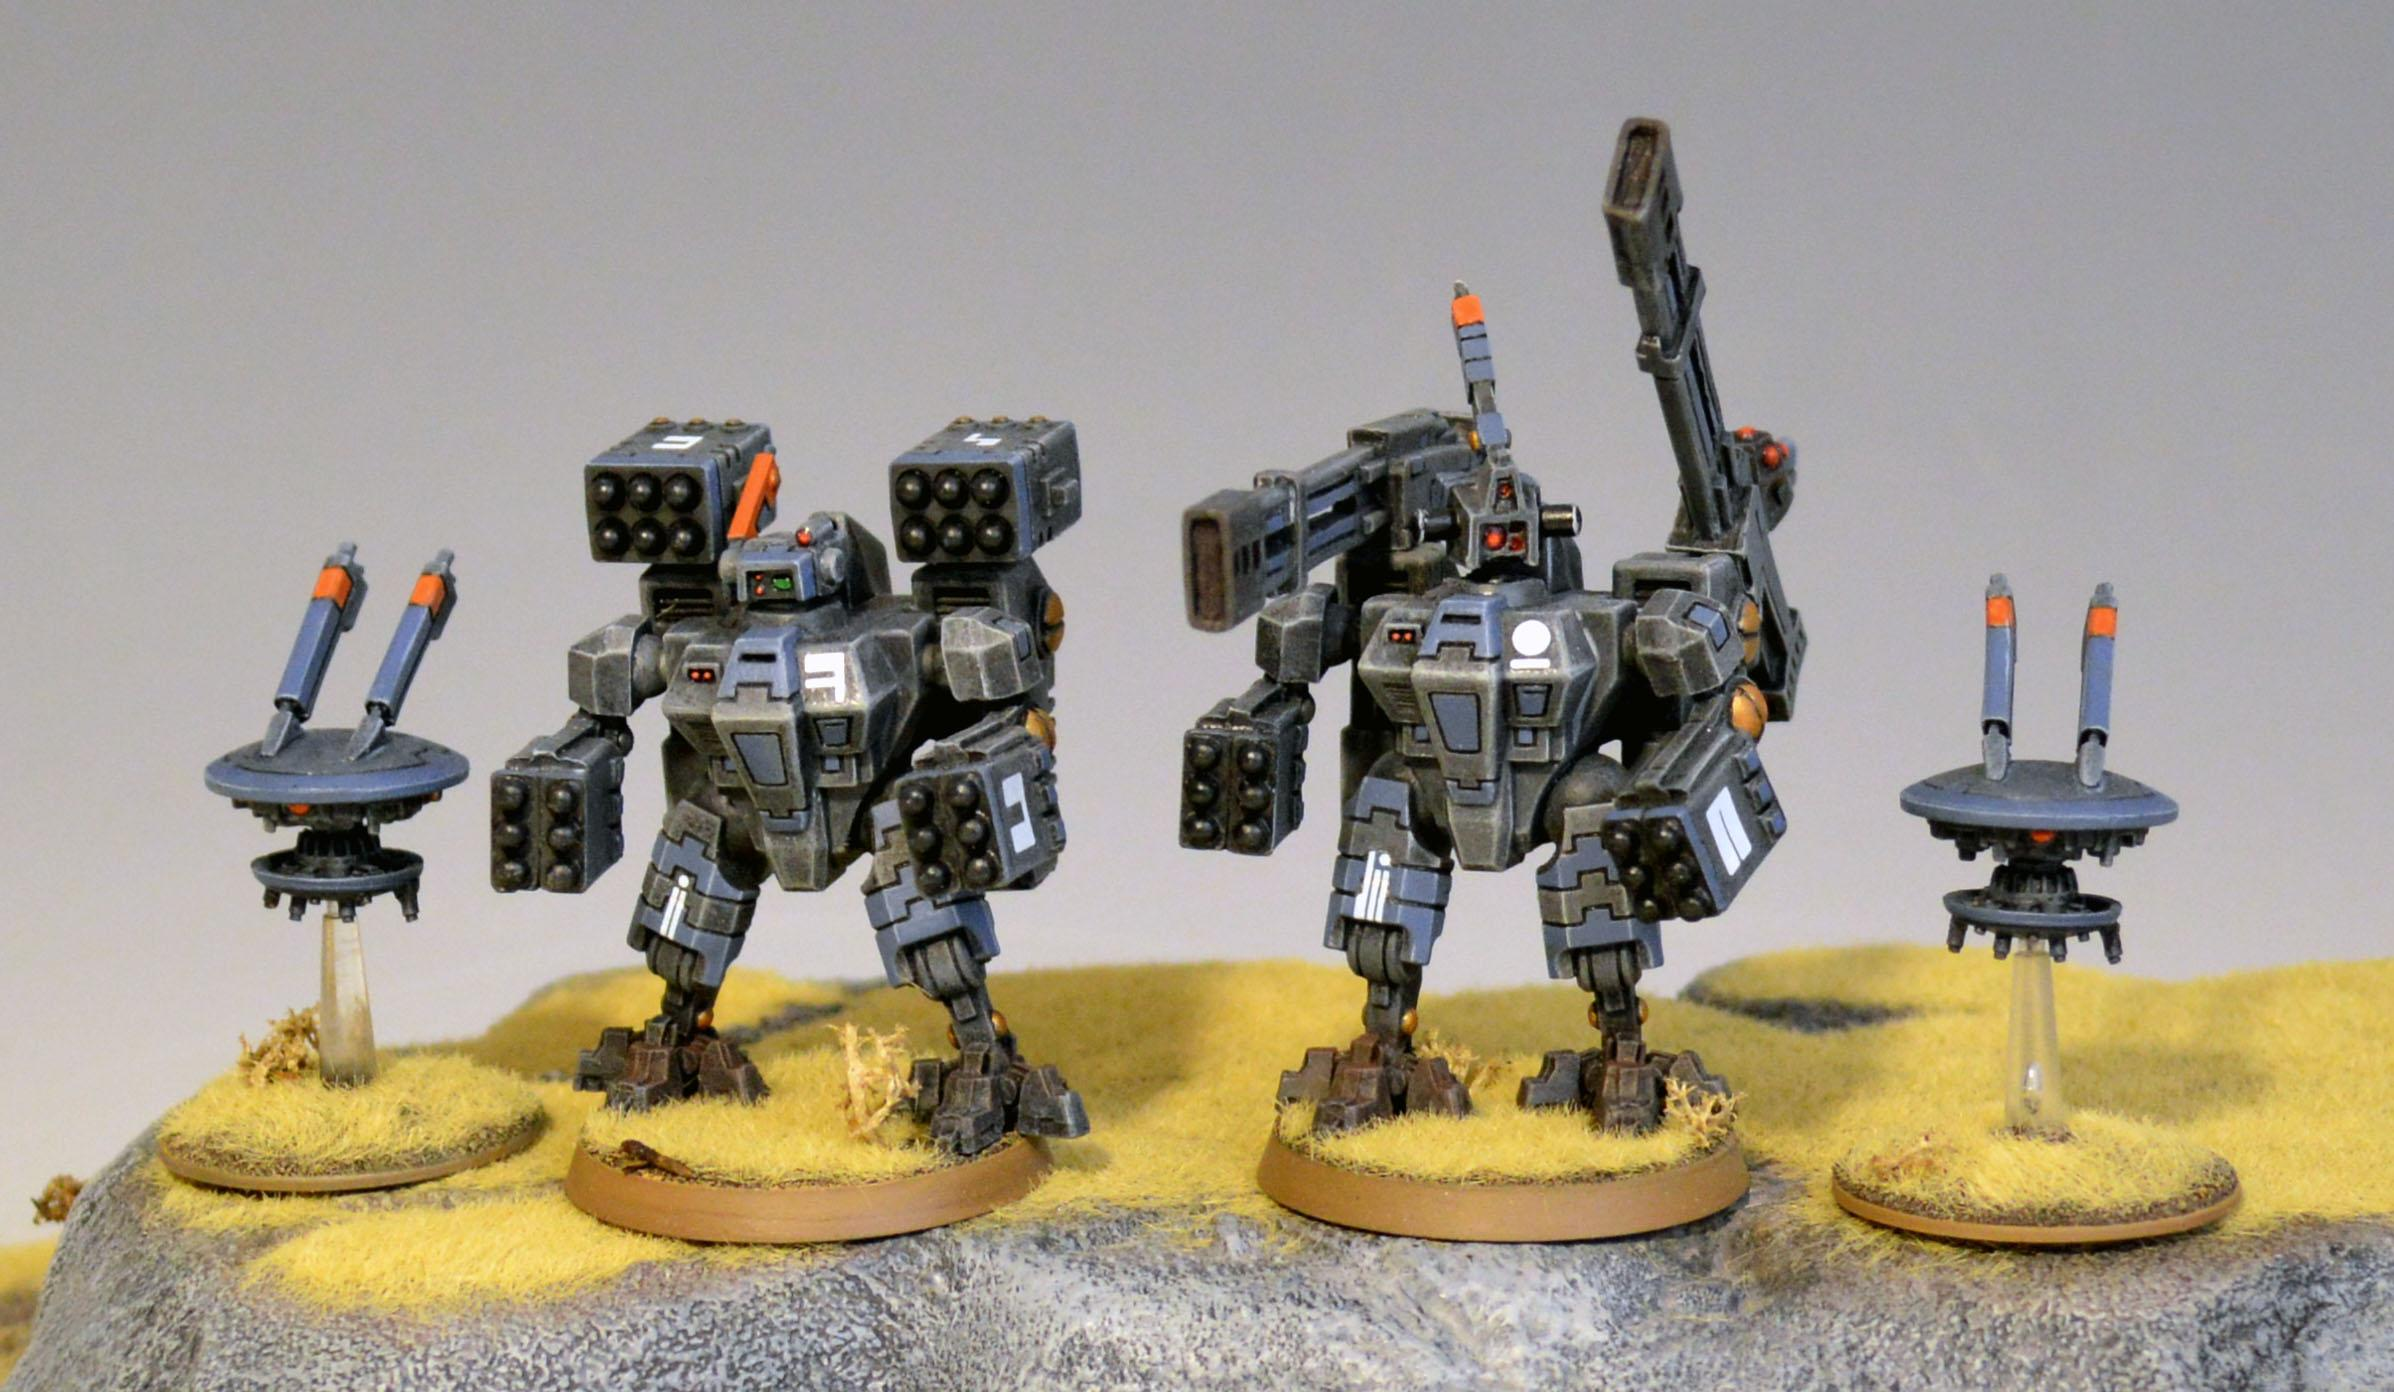 Broadsides, Xv-88, XV88 Broadside Battlesuit Team 2